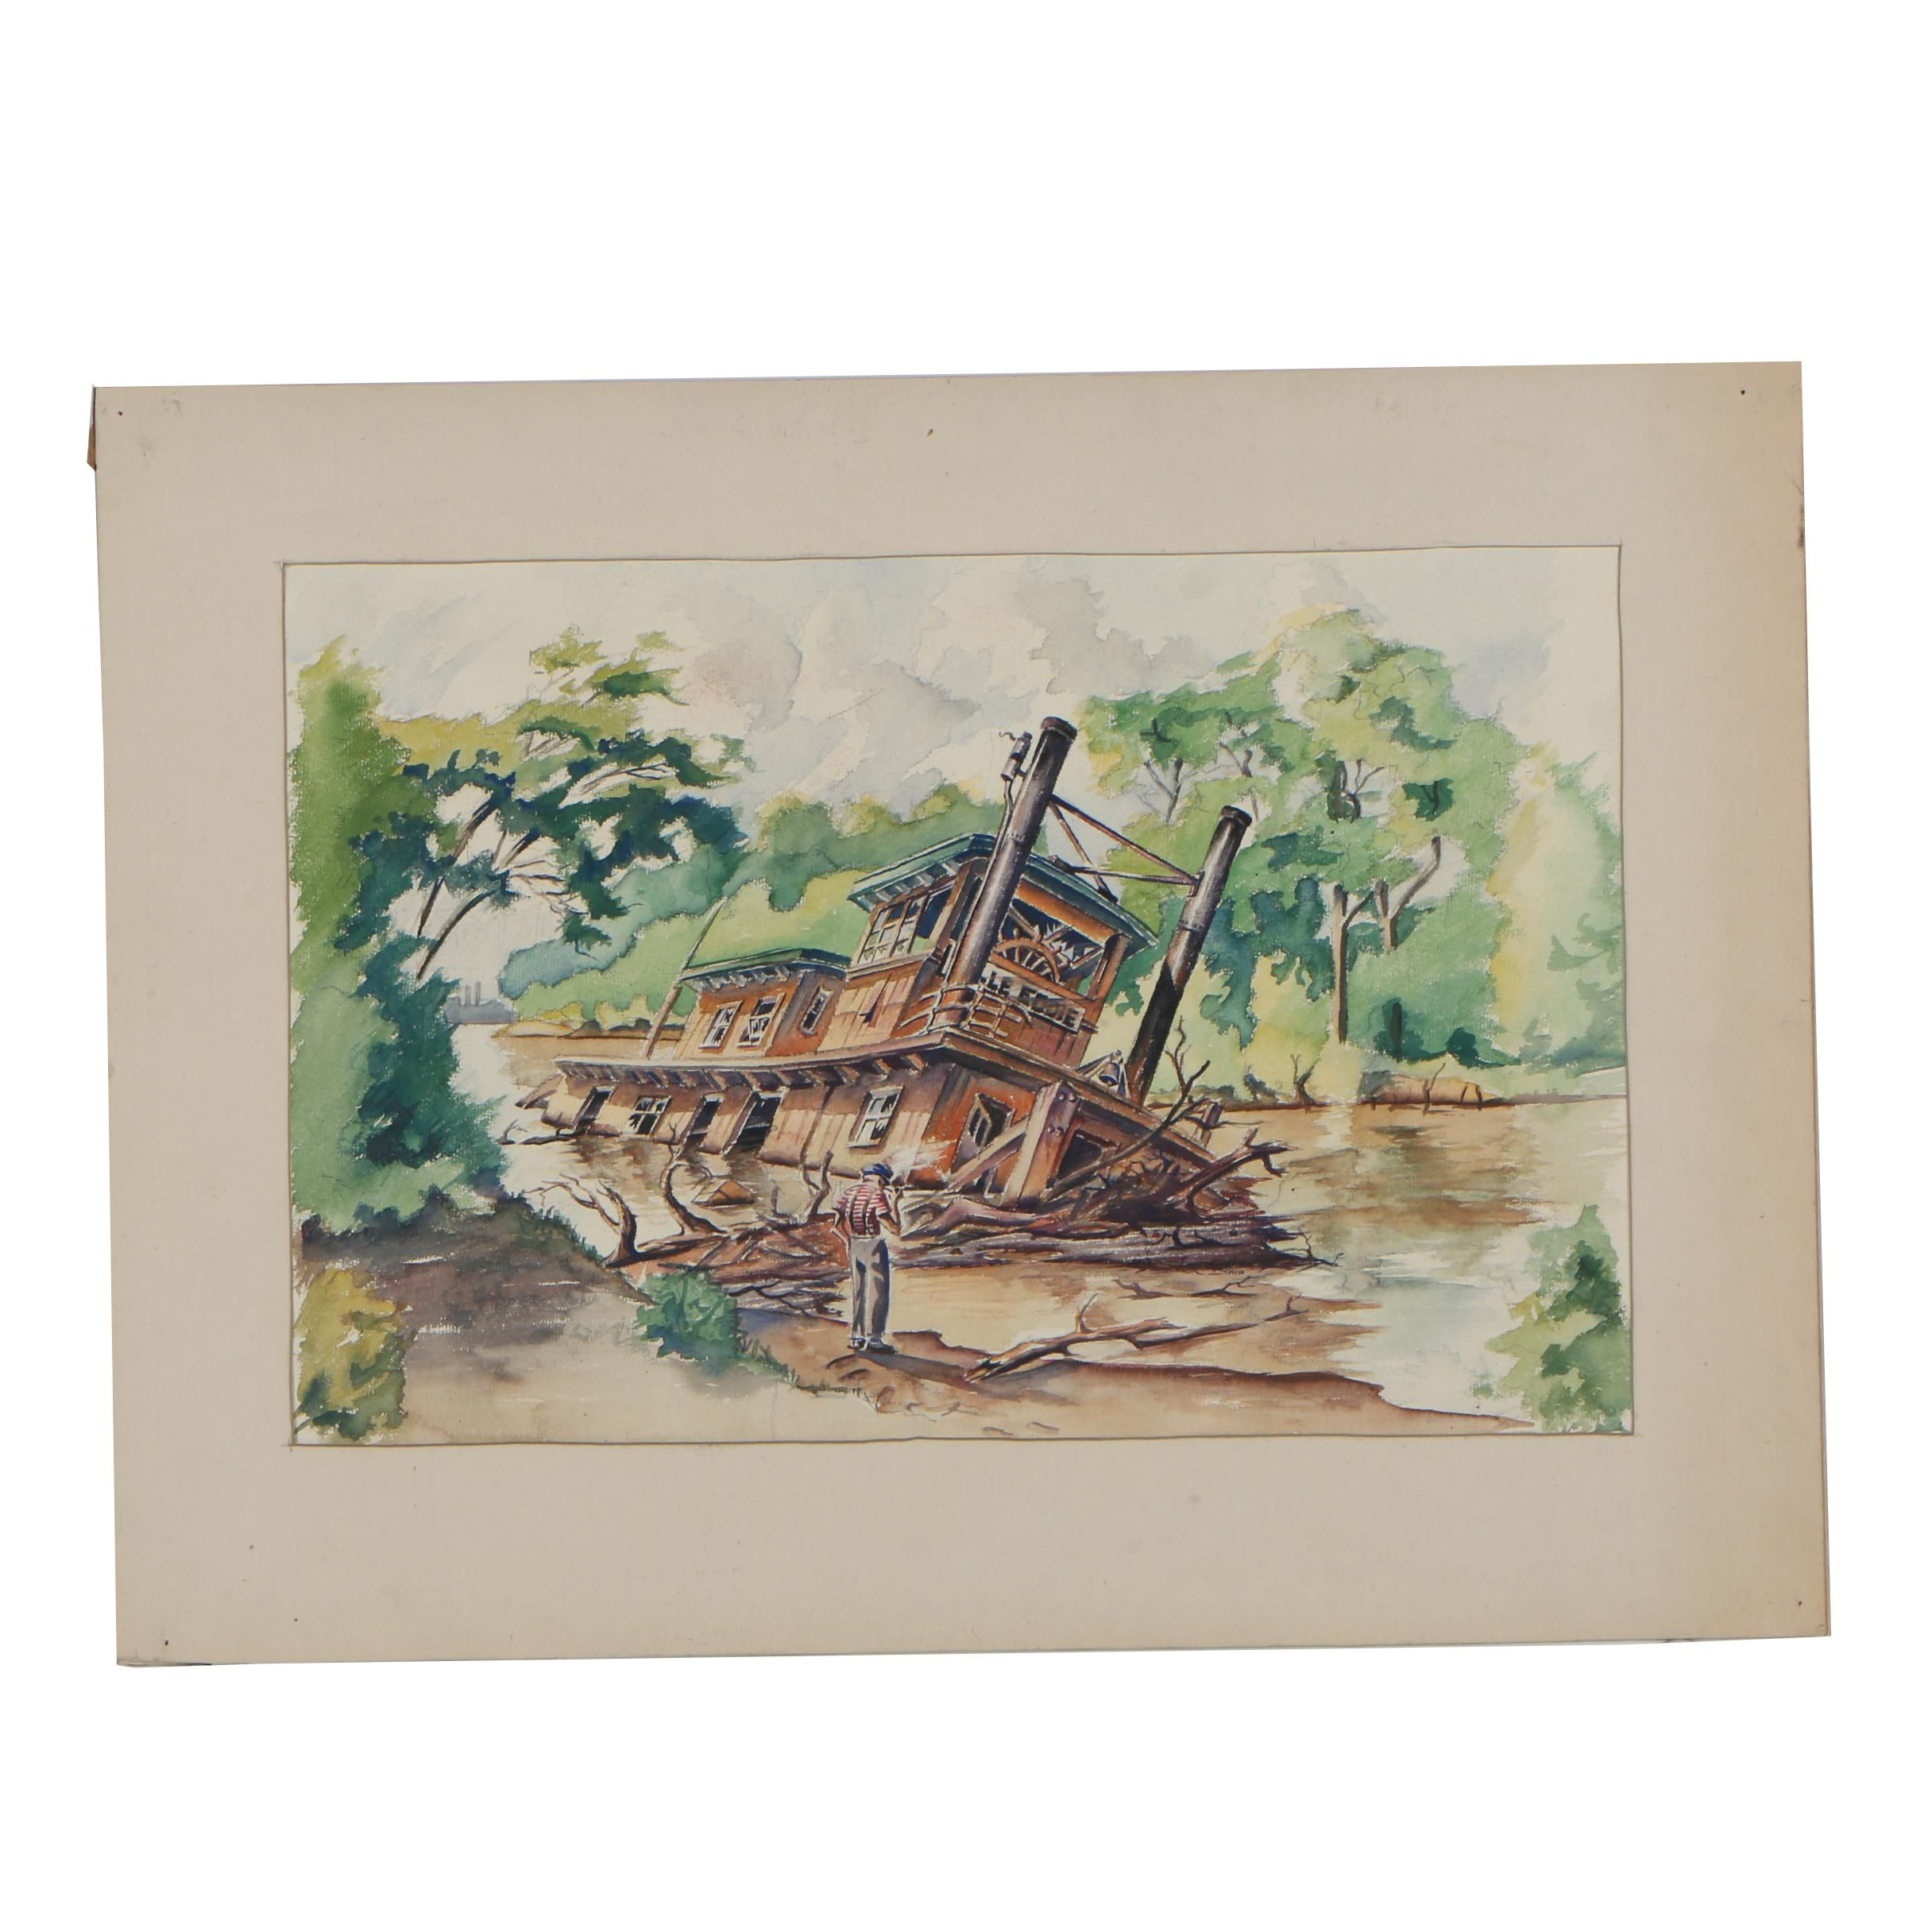 Early-Mid 20th Century Landscape Watercolor Painting